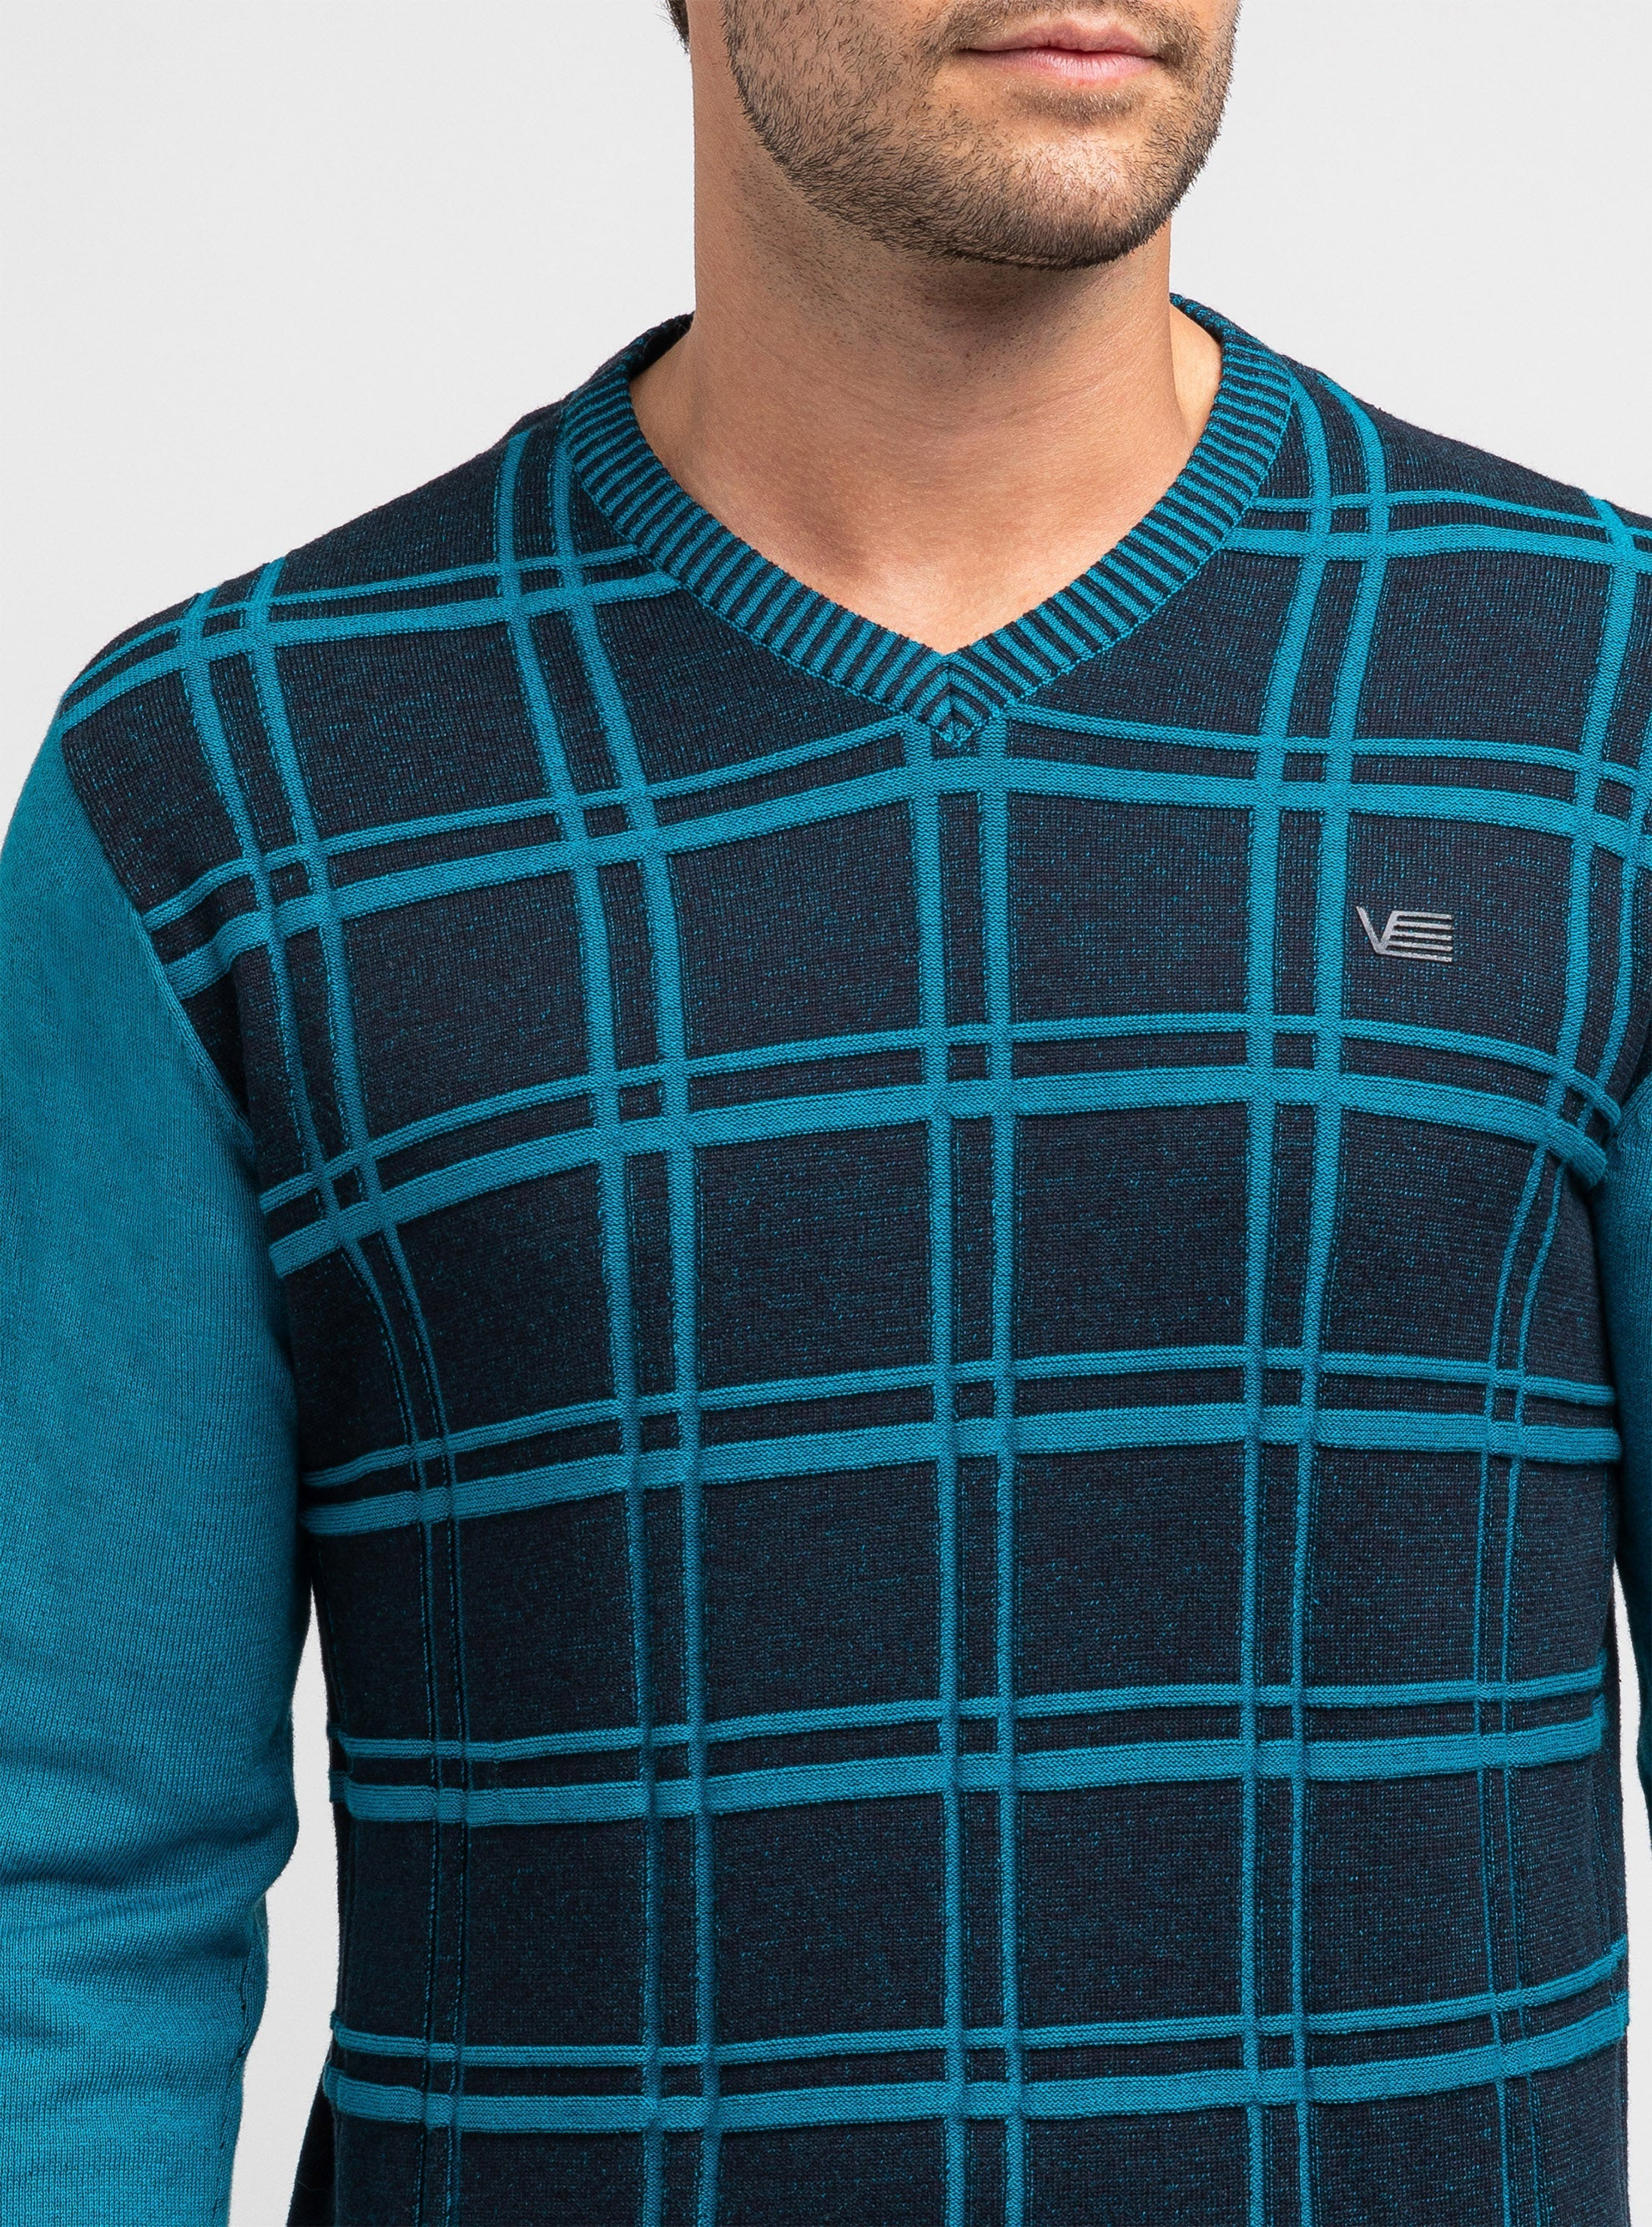 Jumper with checked jacquard